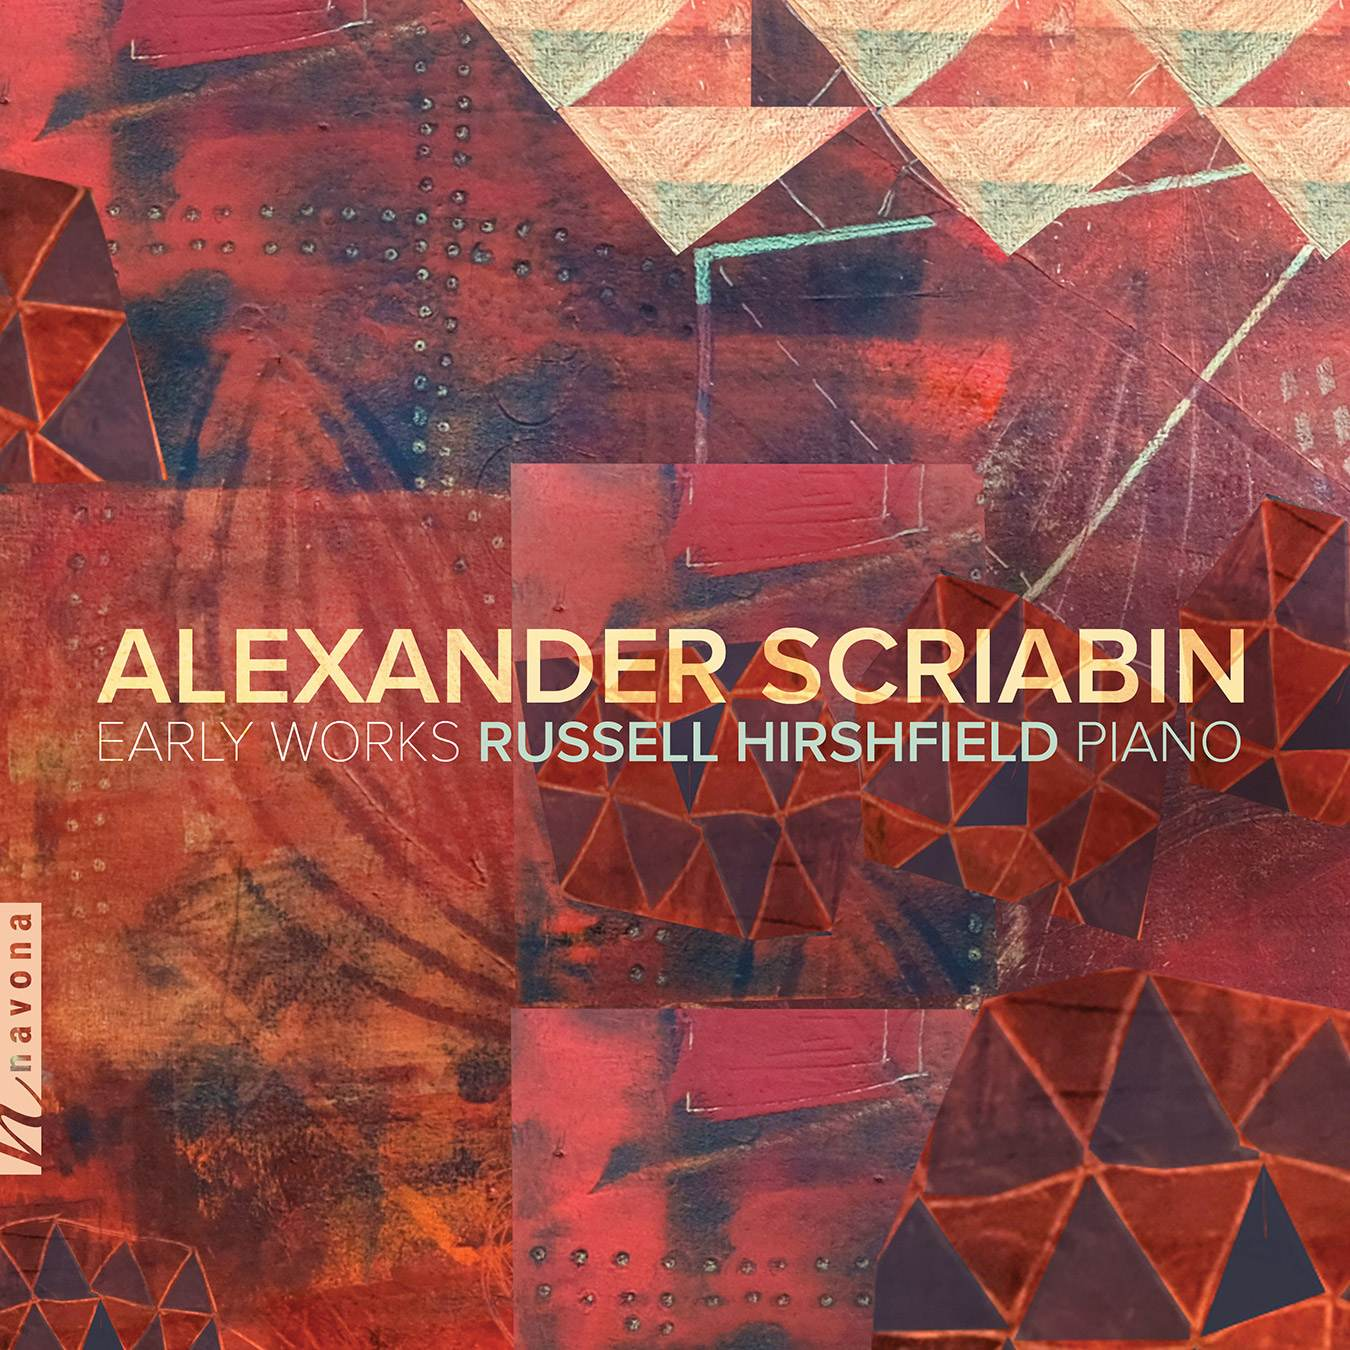 Early Works -Alexander Scriabin- Russell Hirshfield - Album Cover